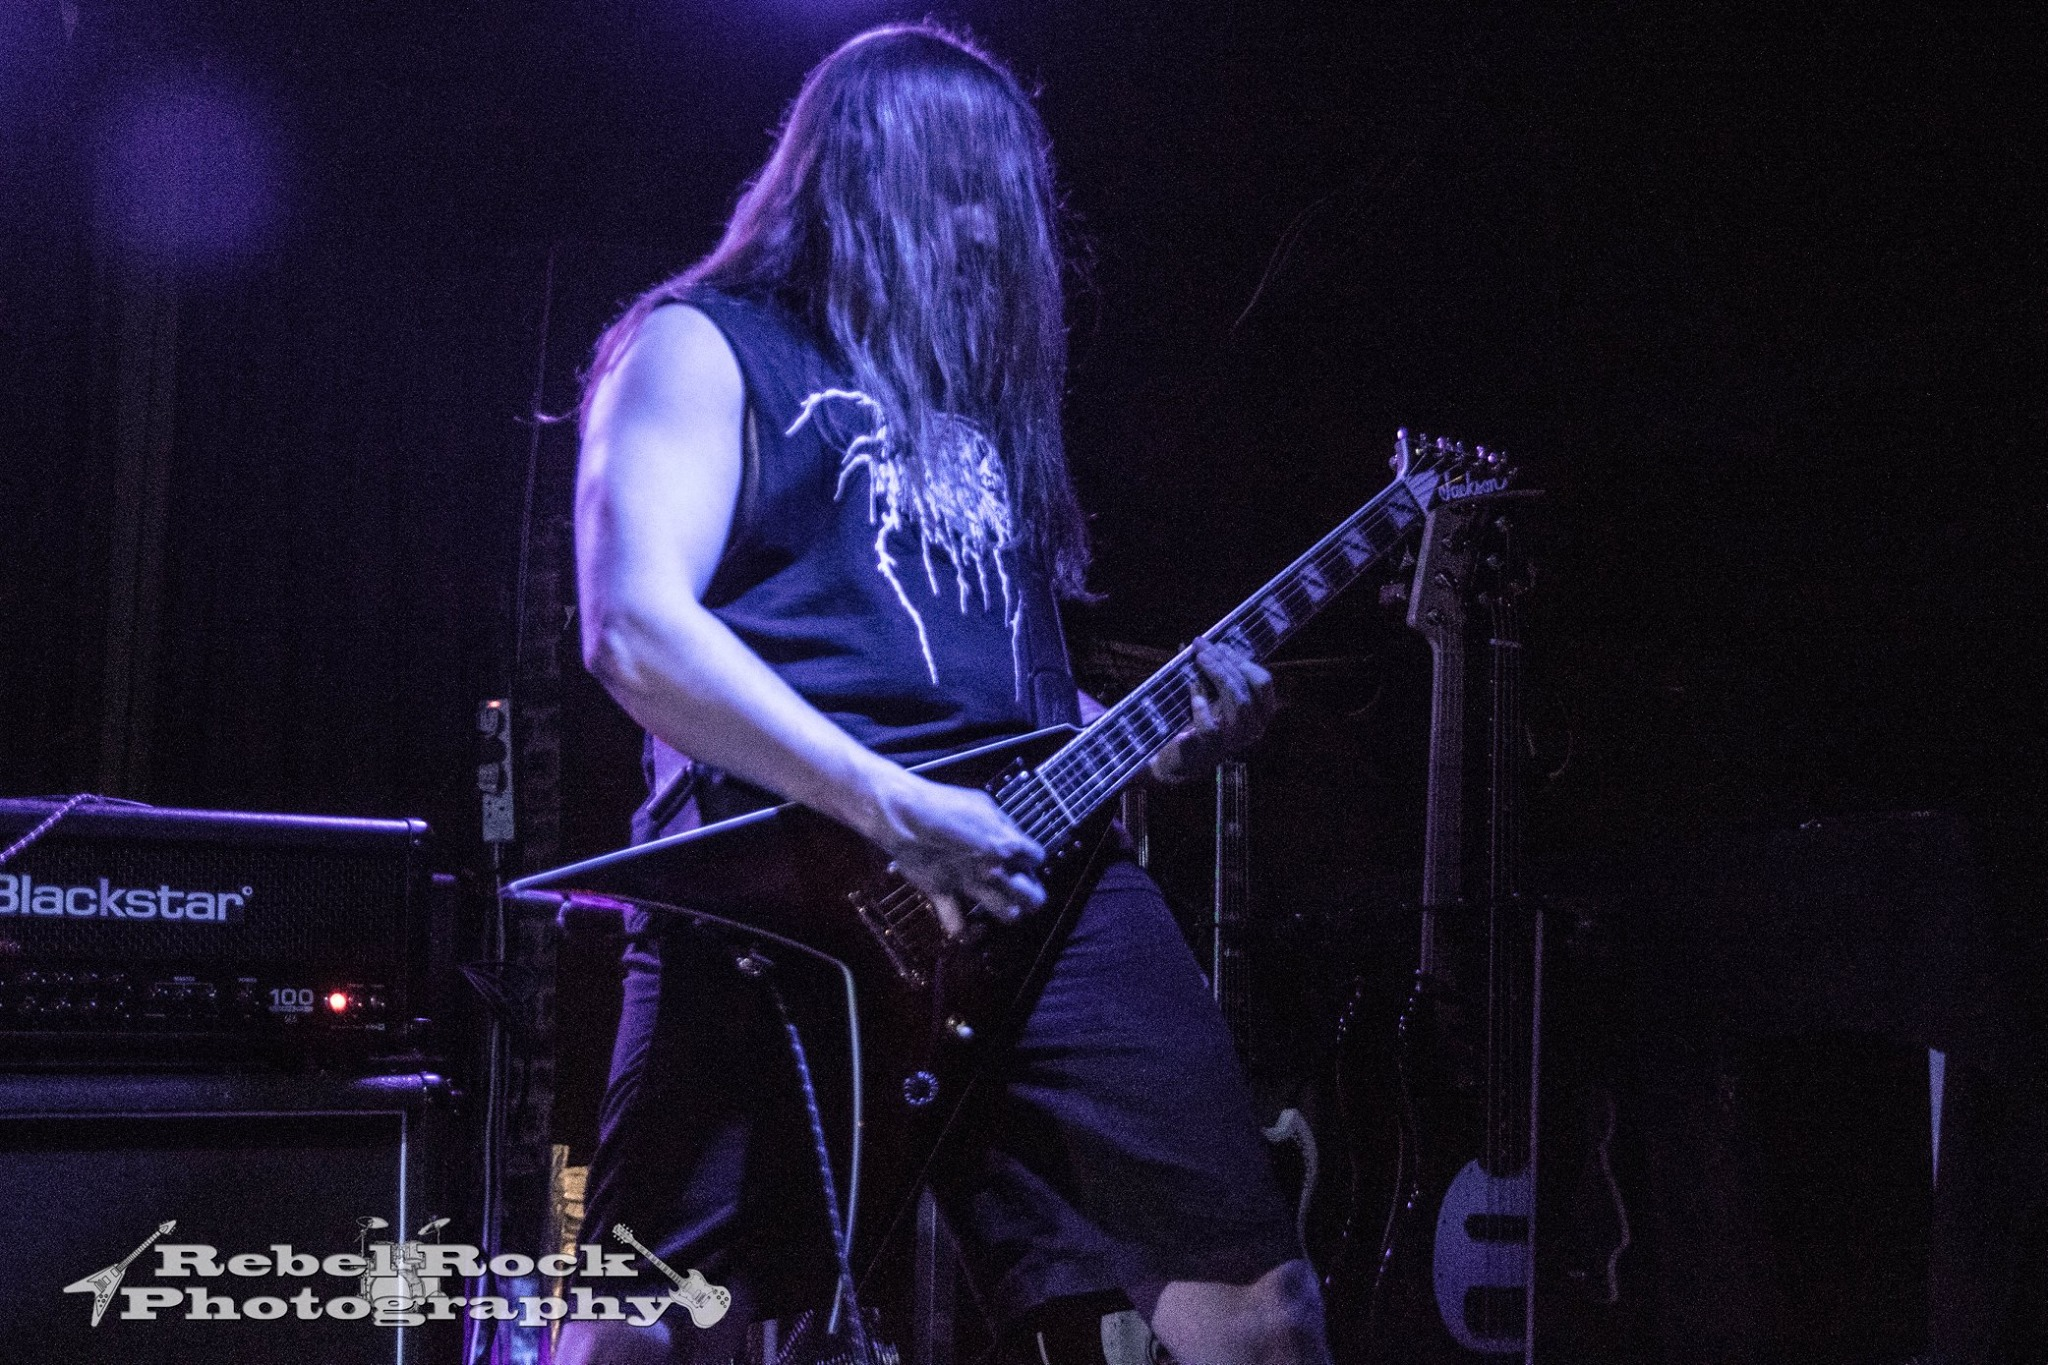 PIST at Rebellion on July 19th 2019